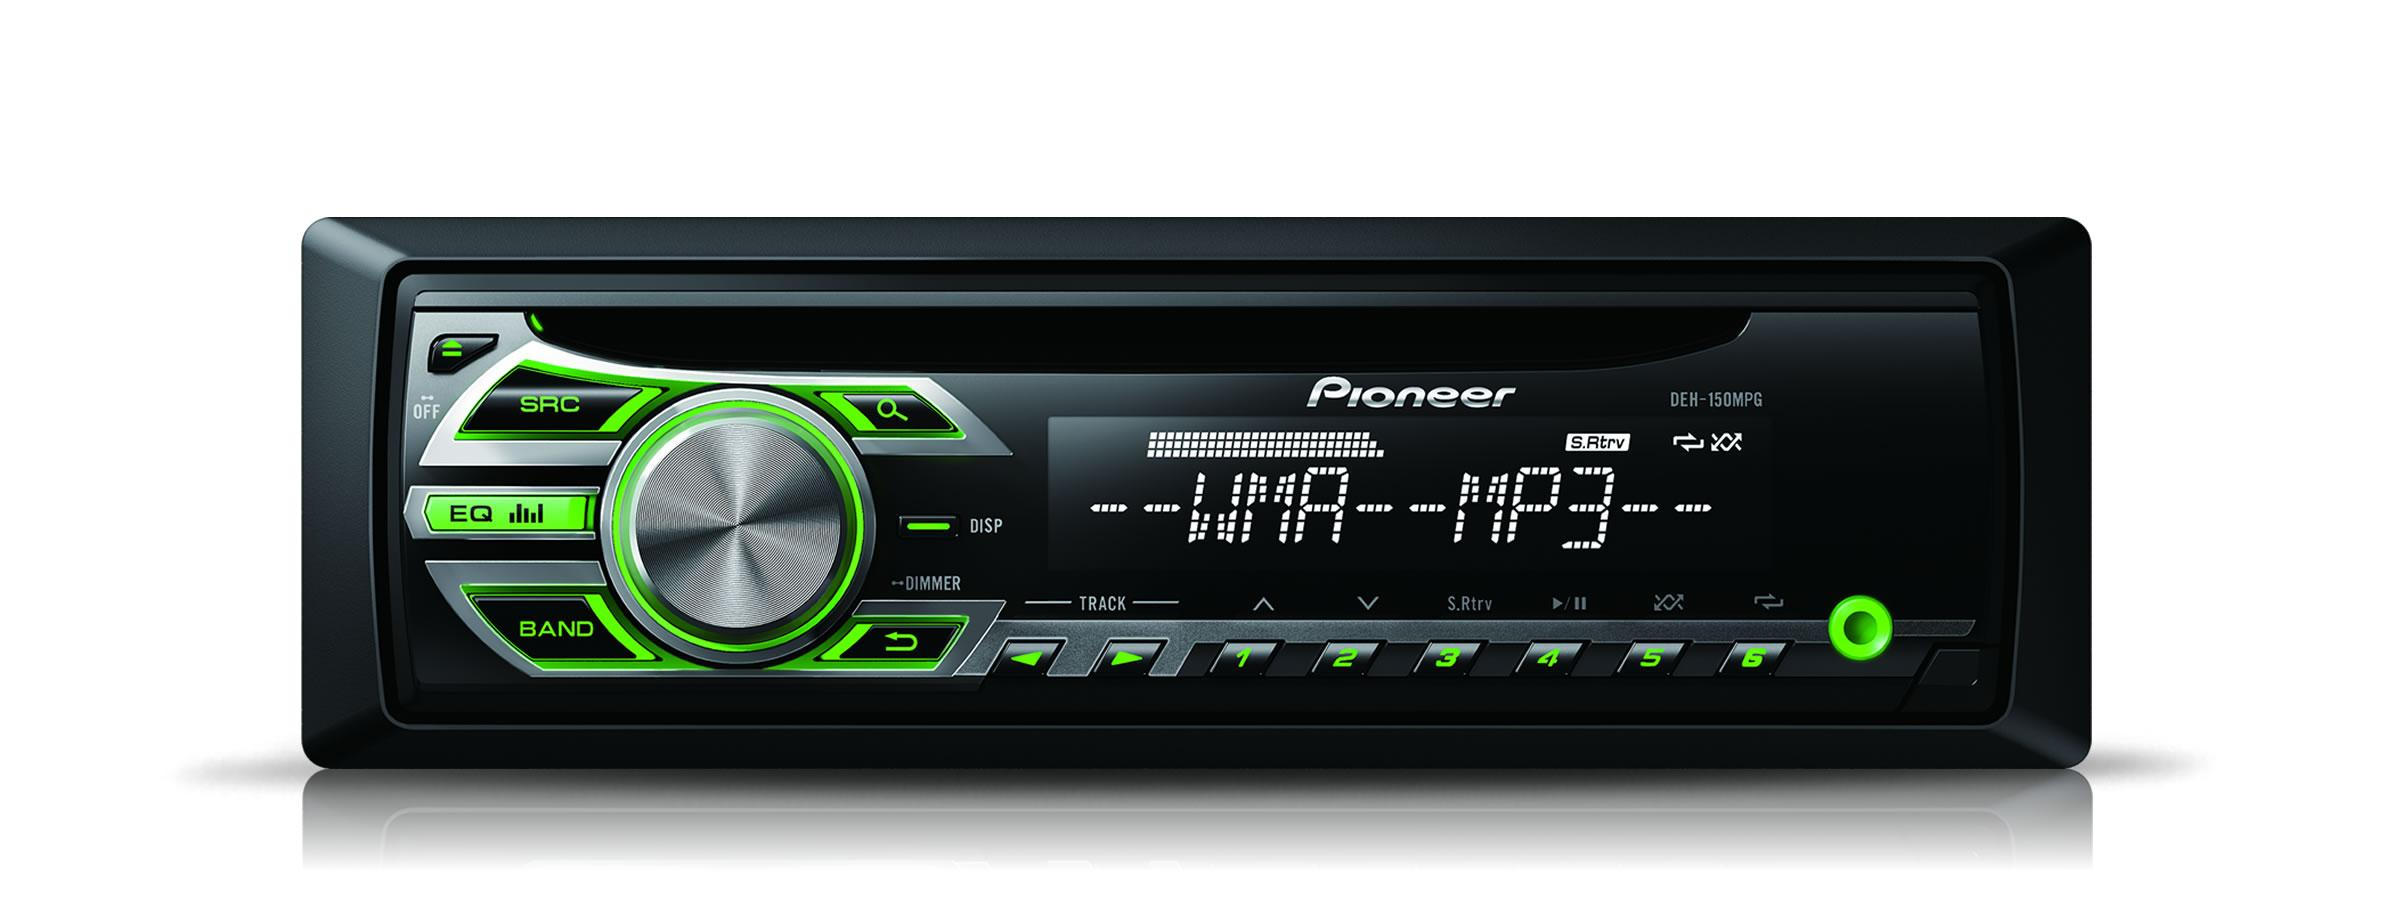 pioneer deh 150mpg autoradio cd mp3 wma wav aux 4x50w vert 307534. Black Bedroom Furniture Sets. Home Design Ideas